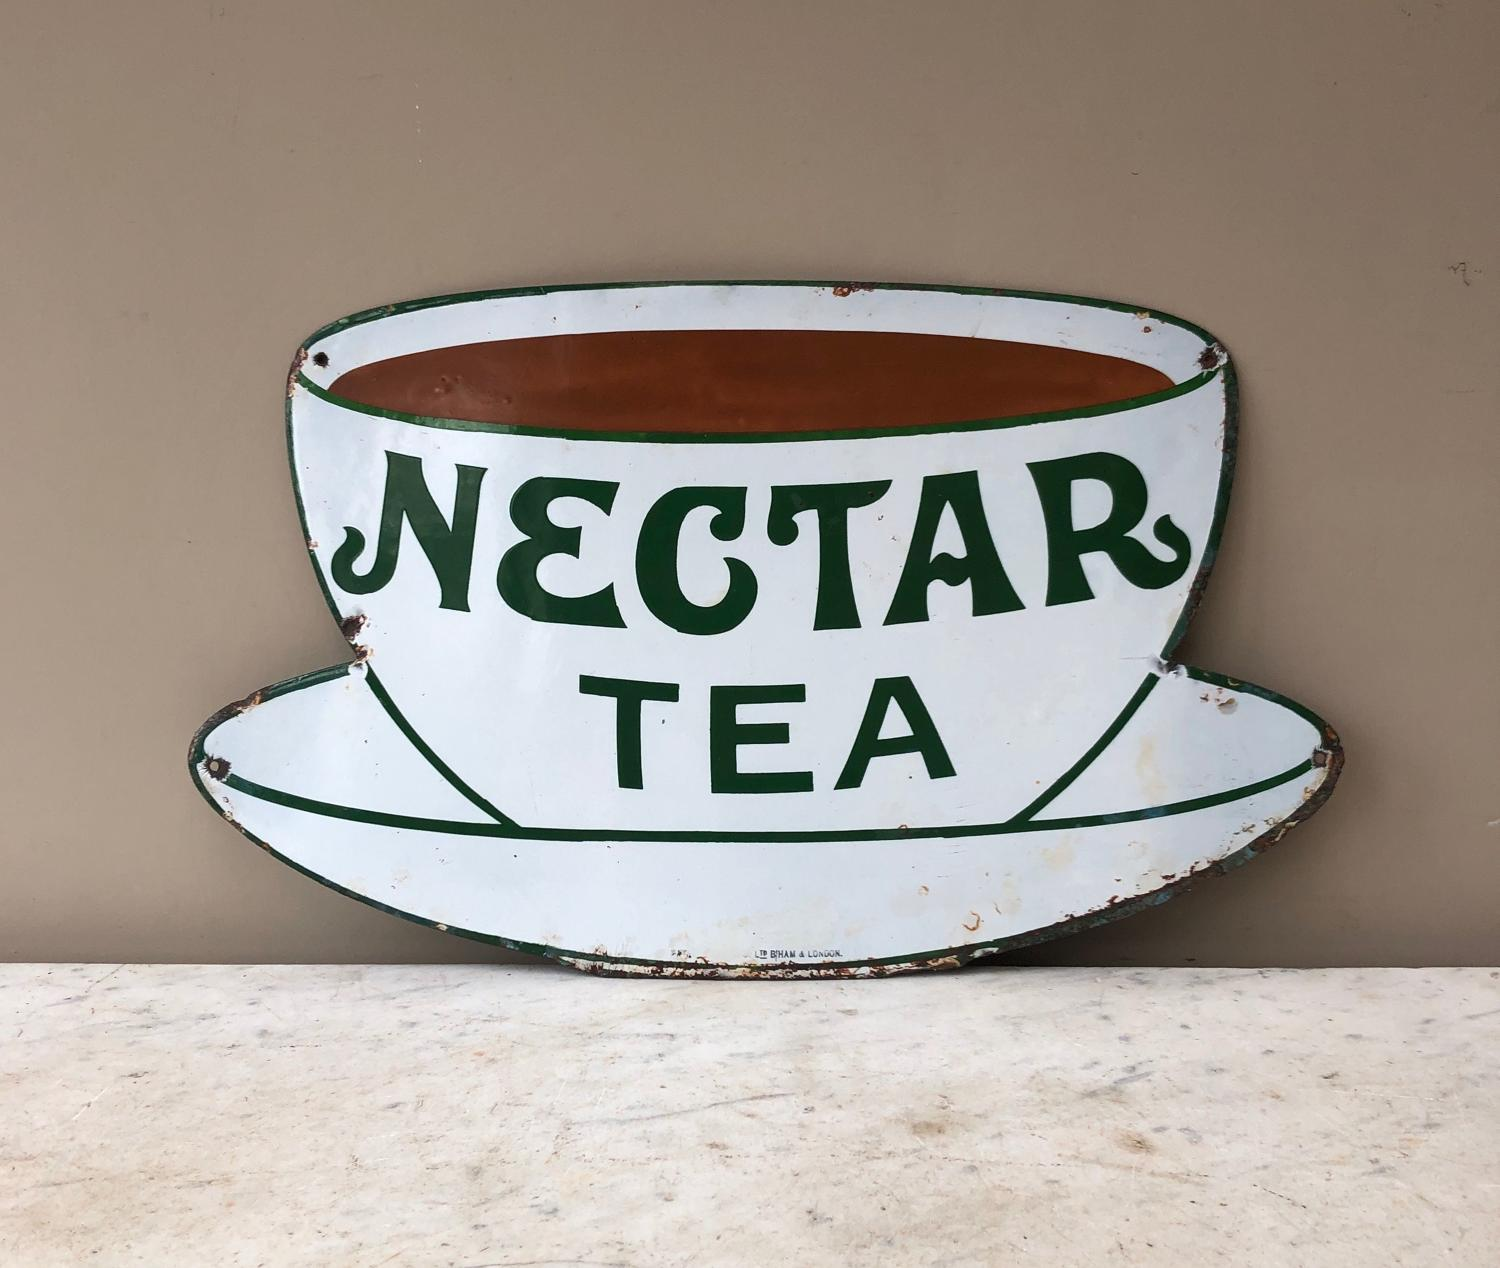 Early 20th Century Enamel Advertising Sign - Nectar Tea